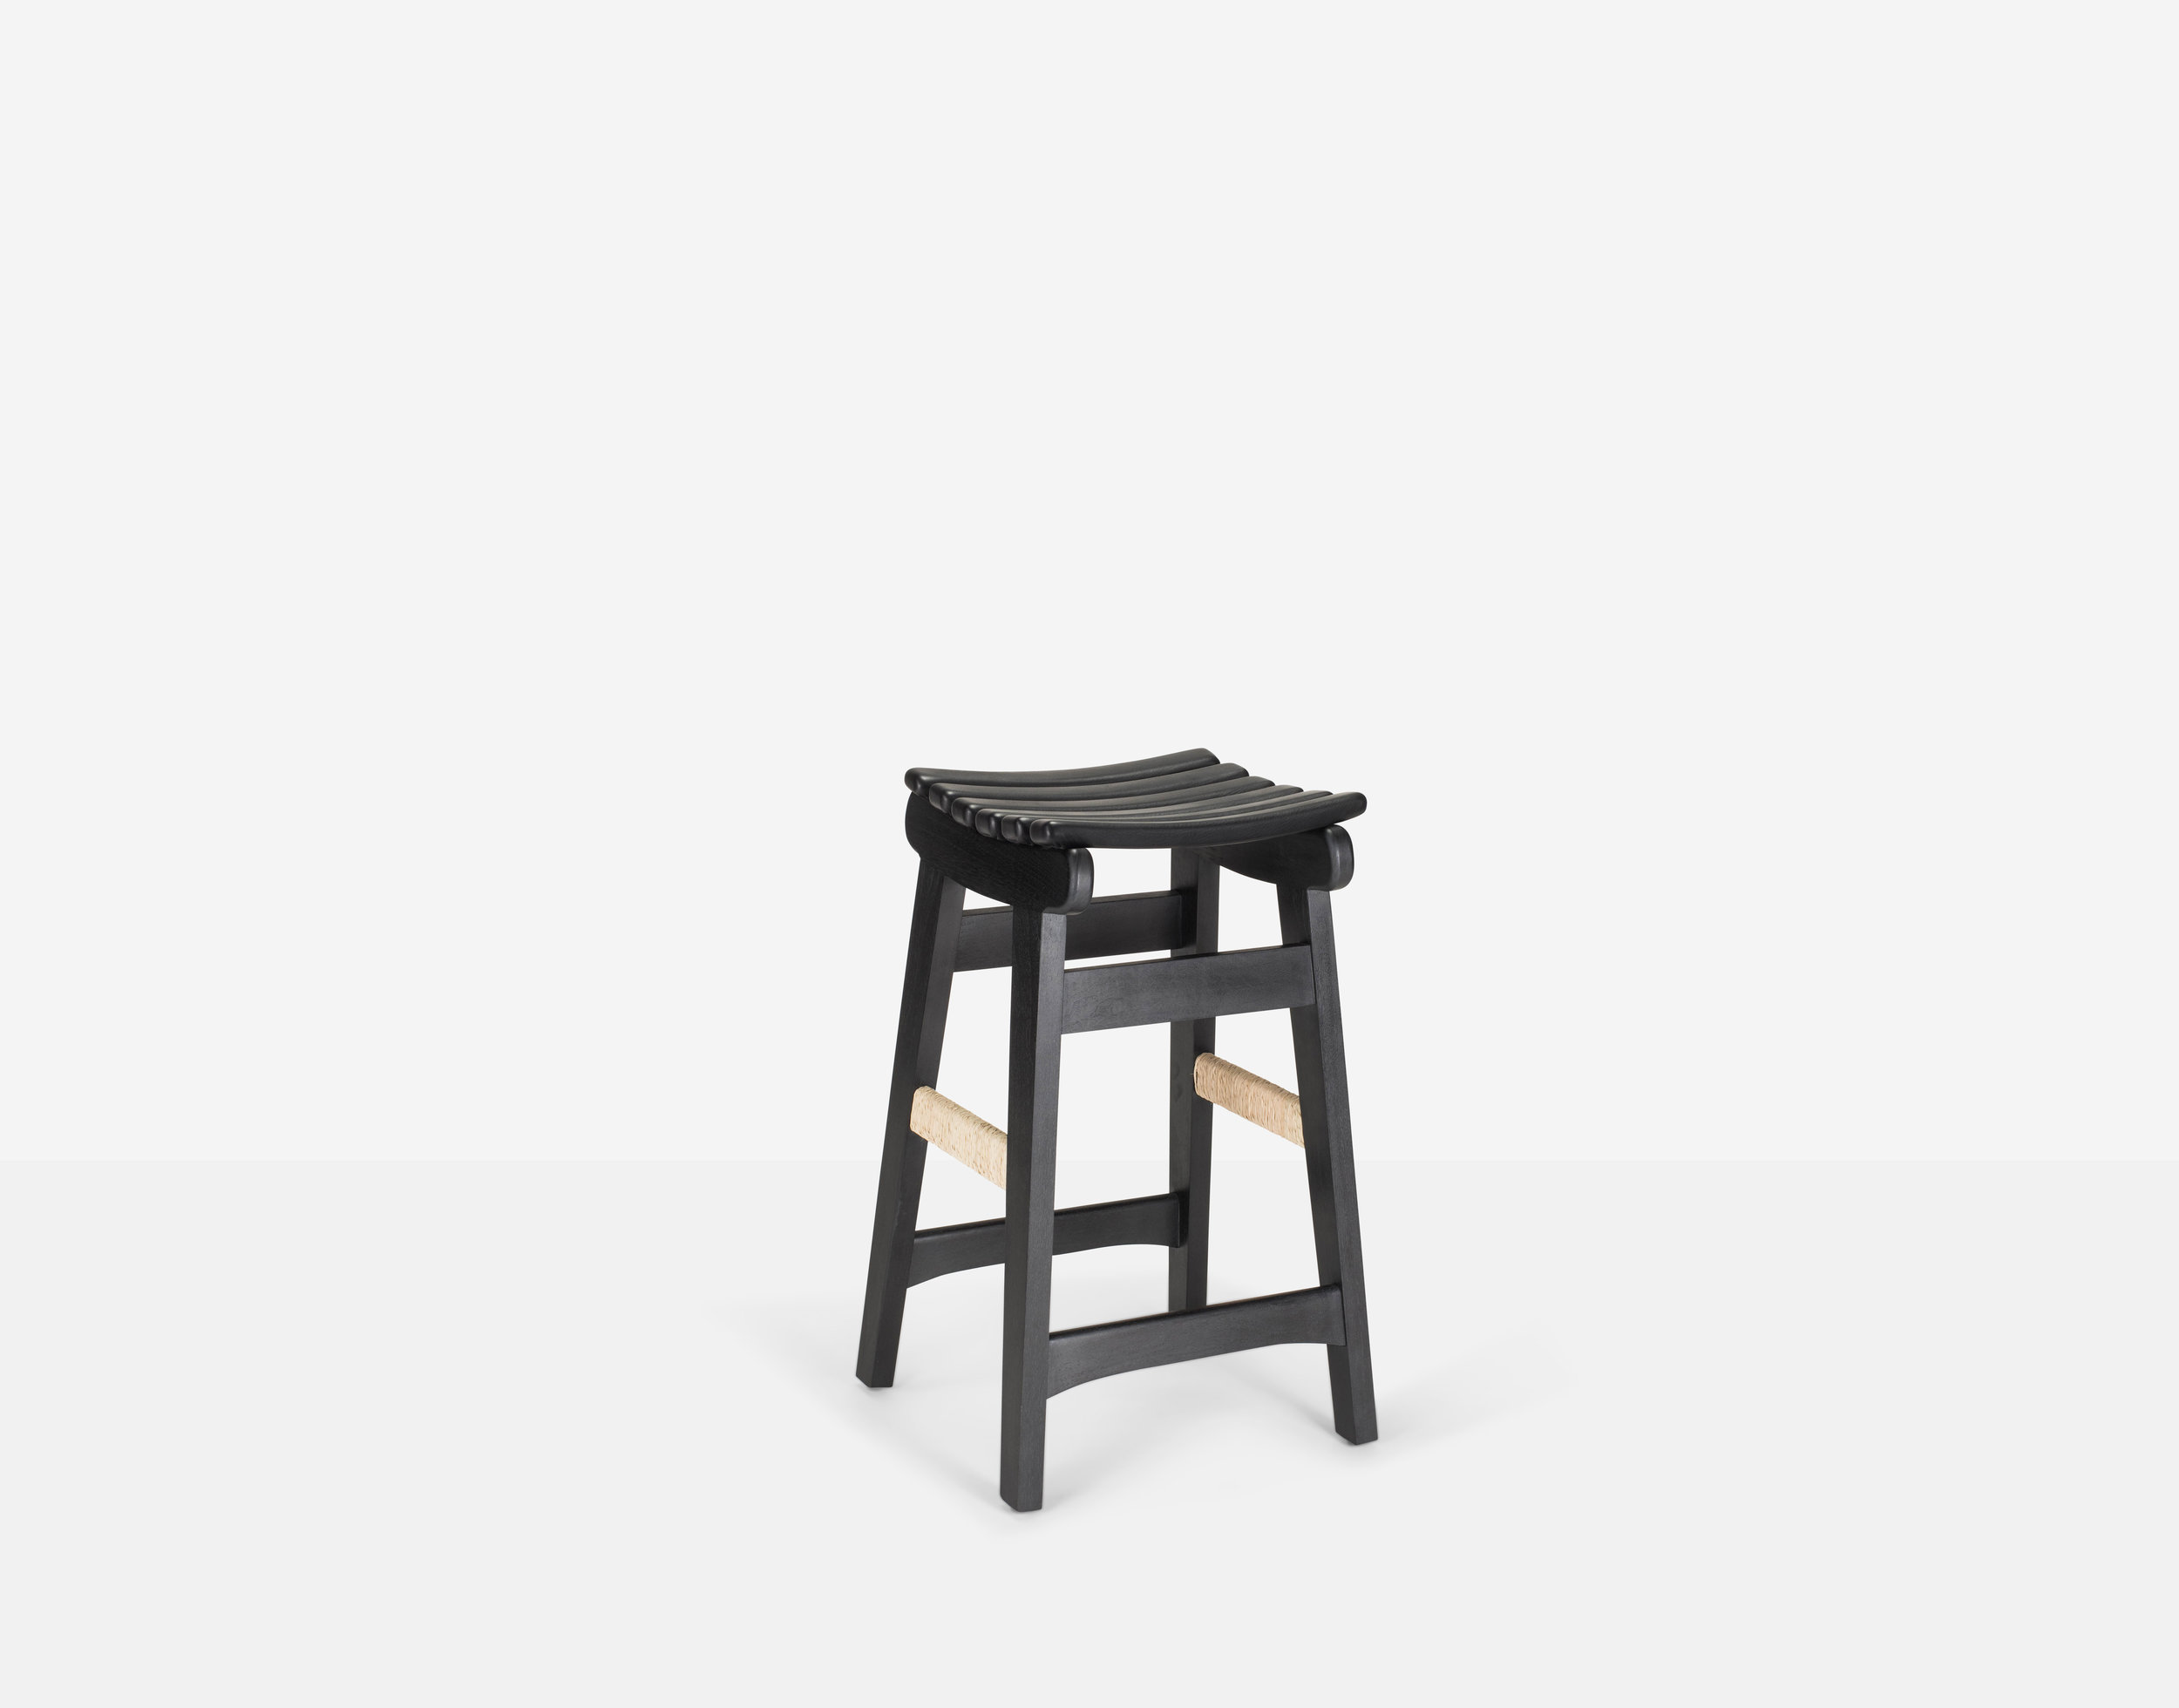 Luteca_MvB_San Miguelito-Counter-Stool_Black Oil Walnut-Black-Leather_FP-w.jpg